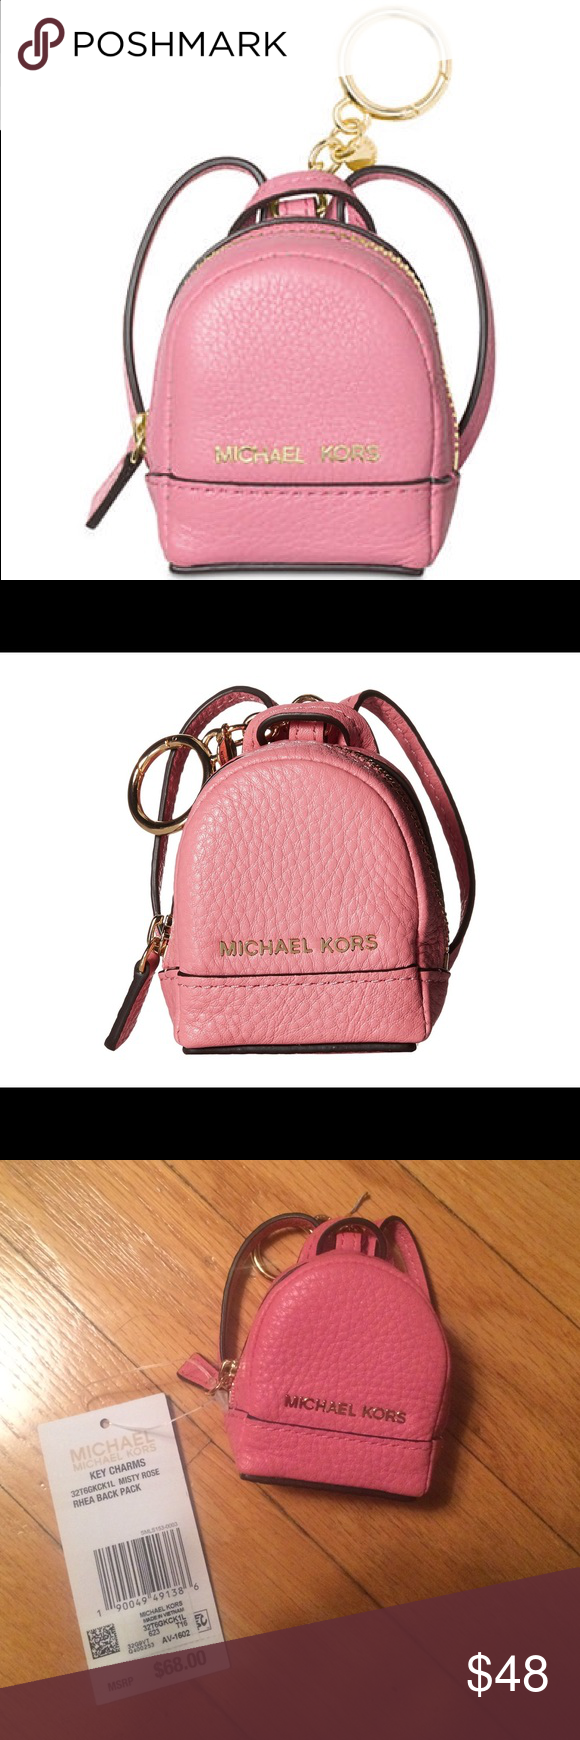 NWT Michael Michael Kors Rhea Backpack Key Charm Adorable backpack keychain.  Could be used for storing coins or other small items. fd4489b1c4